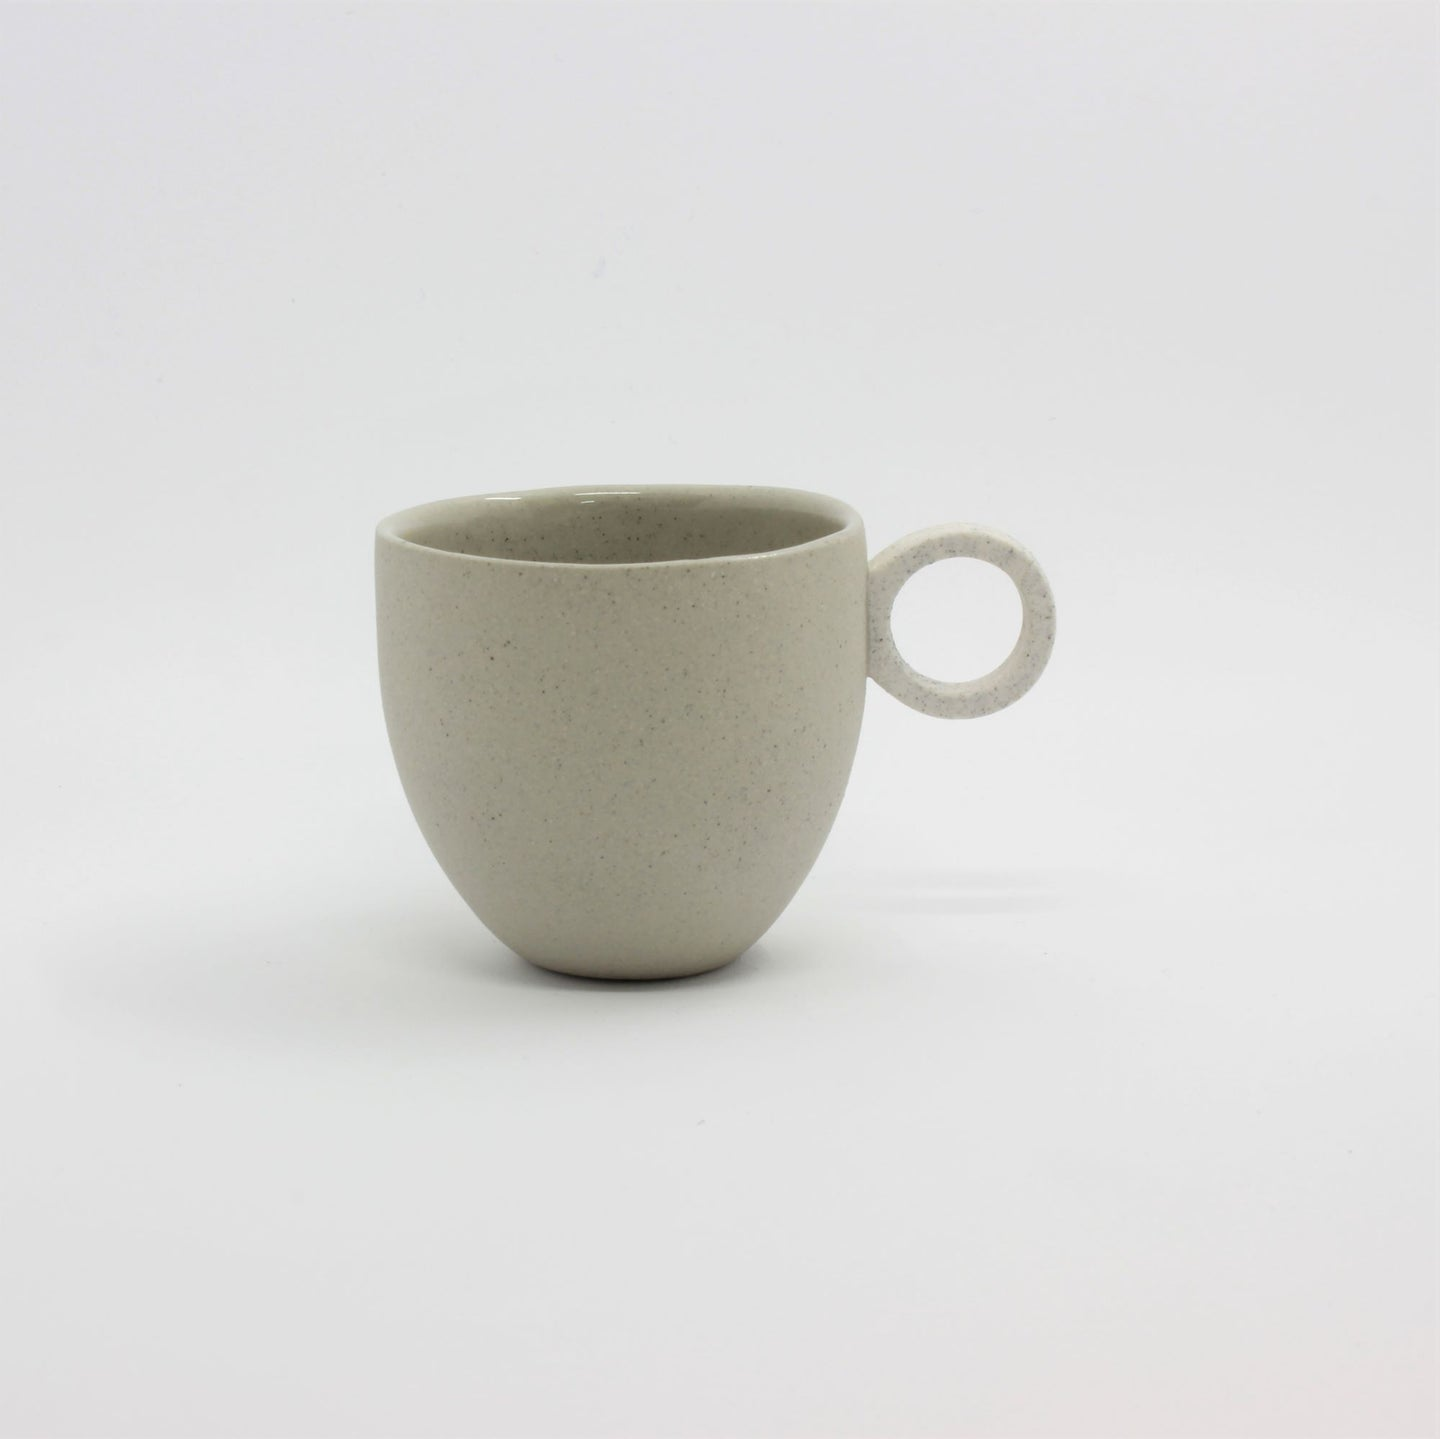 Matt Speckle Grey Espresso Cup